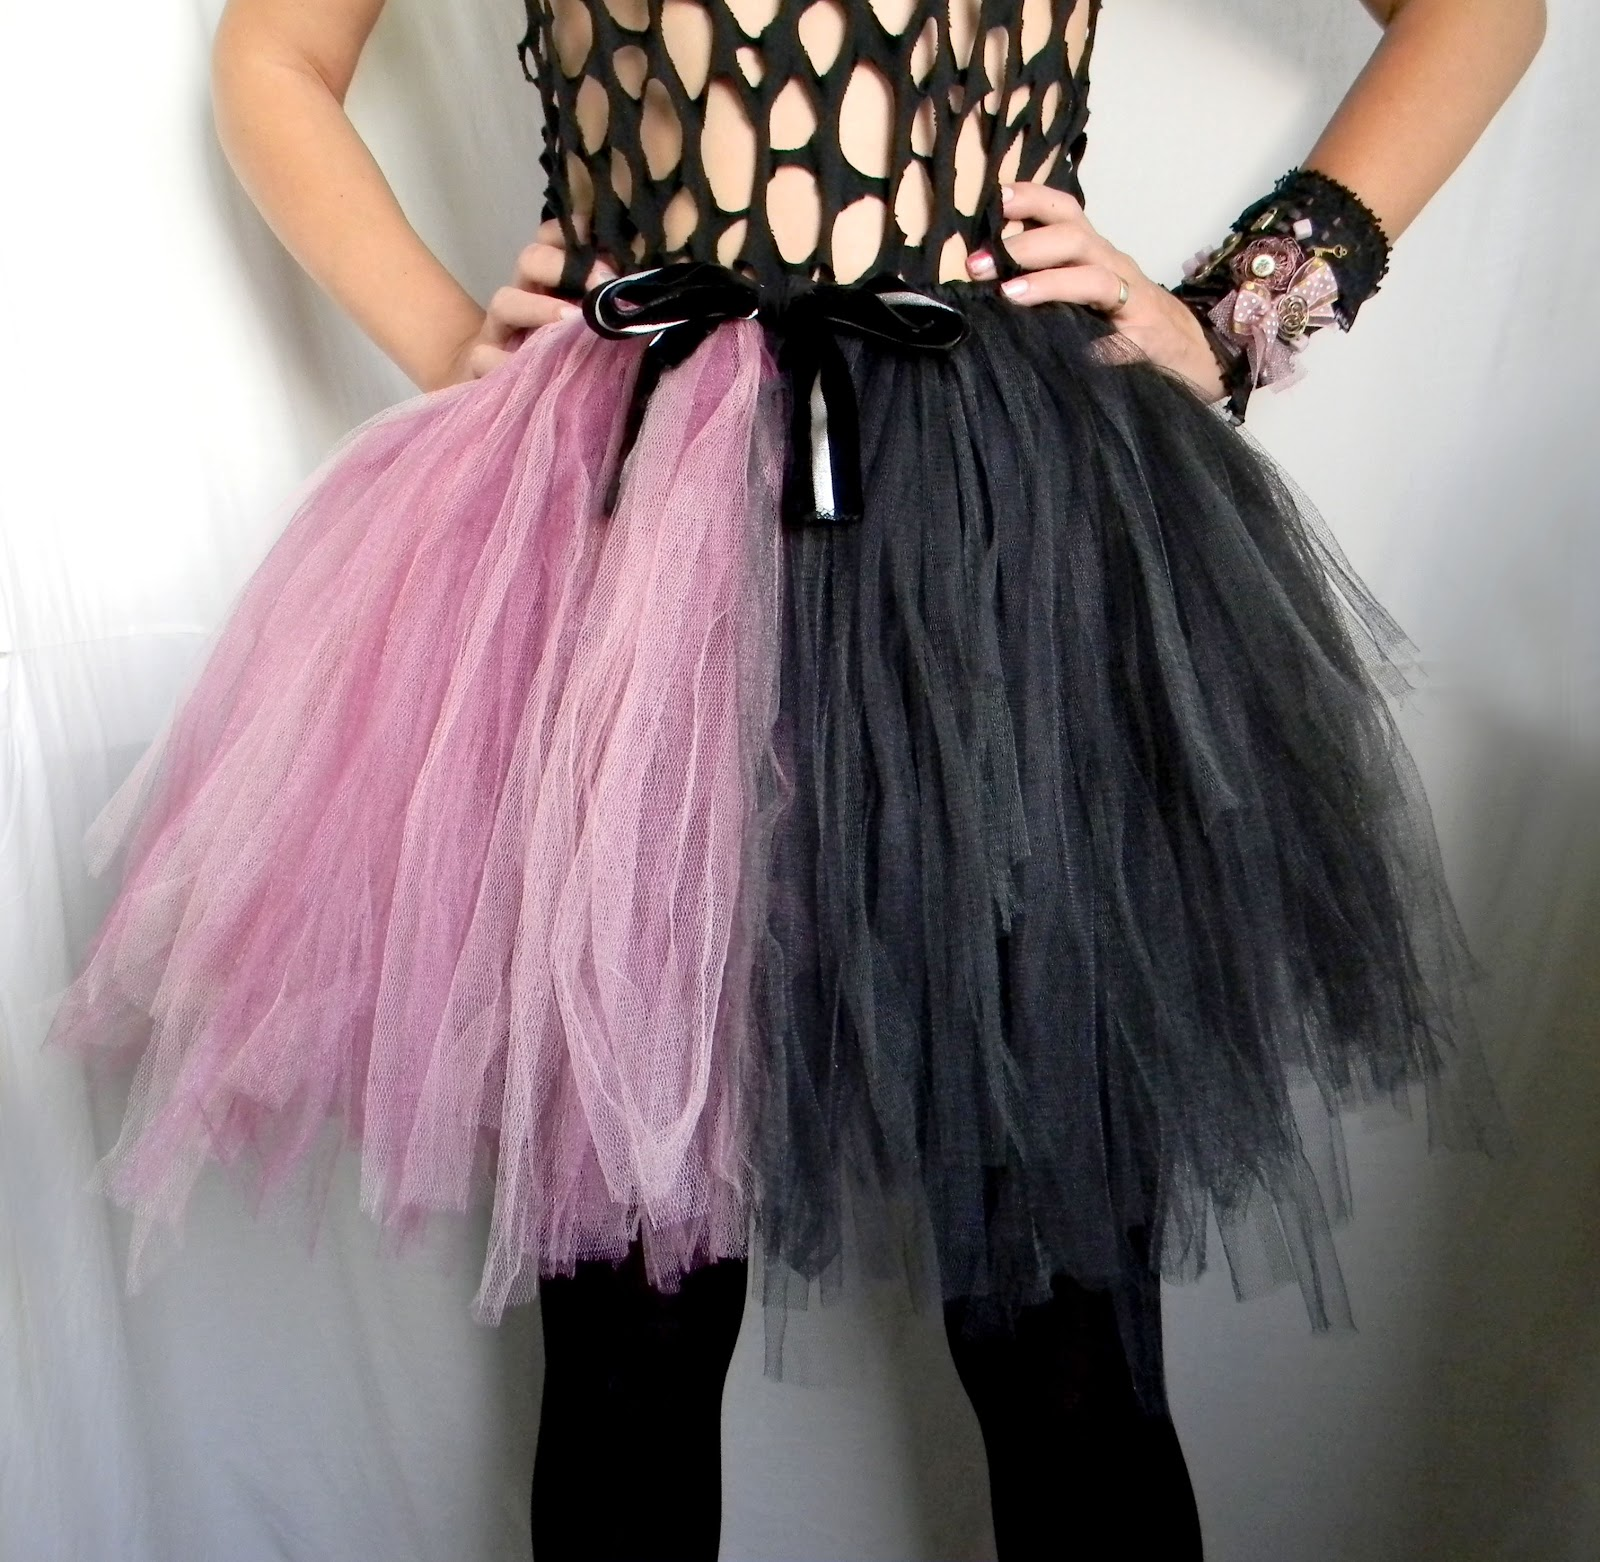 Tutu Fashion Skirt Handmade Ballet Clothing